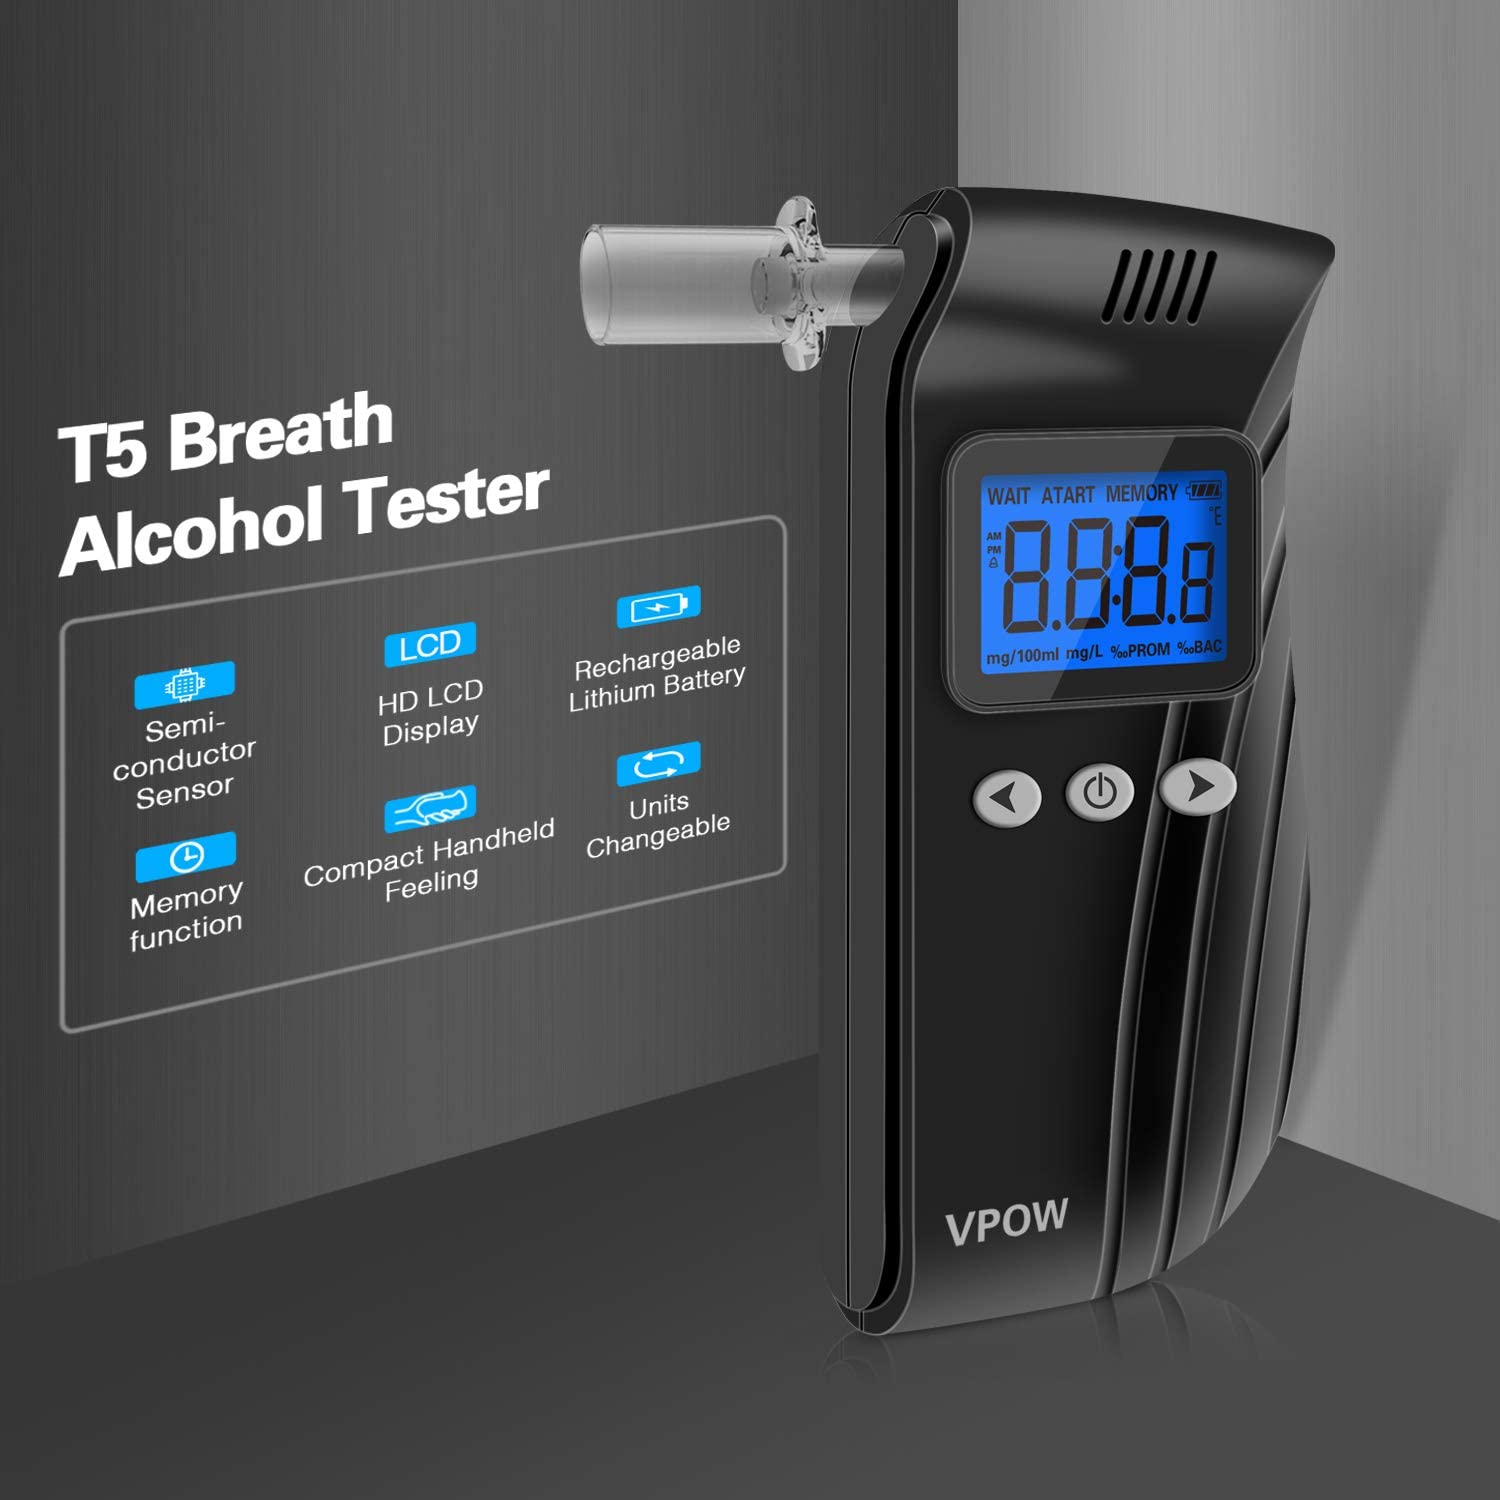 10 mouthpieces and 1 Store Bag USB Rechargeable and Easy for Personal Use Breathalyser with Digital LCD /& Memory Function Professional alcohol tester VPOW Breathalyzer